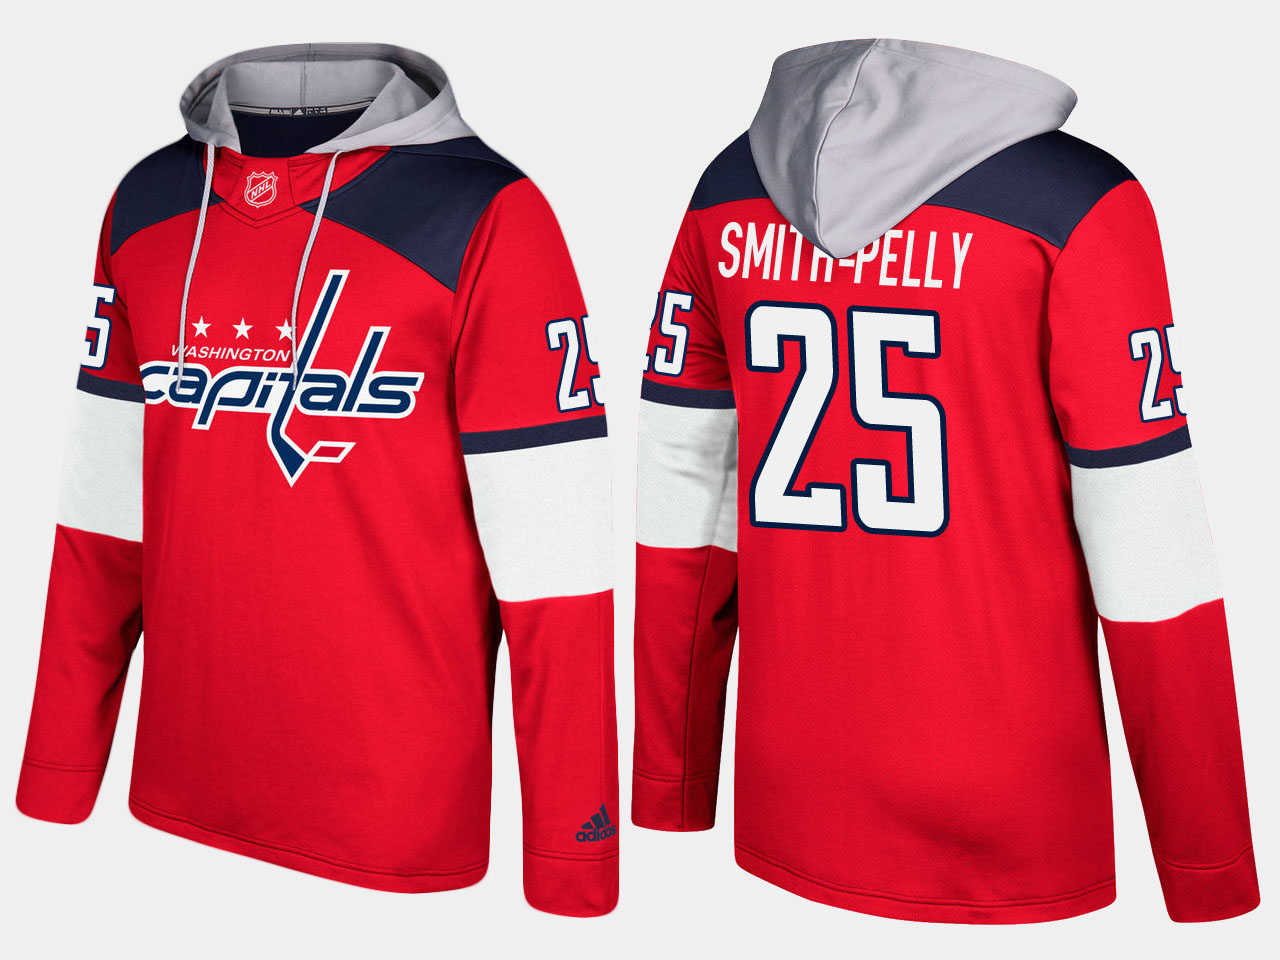 Men NHL Washington capitals 25 devante smith pelly red hoodie